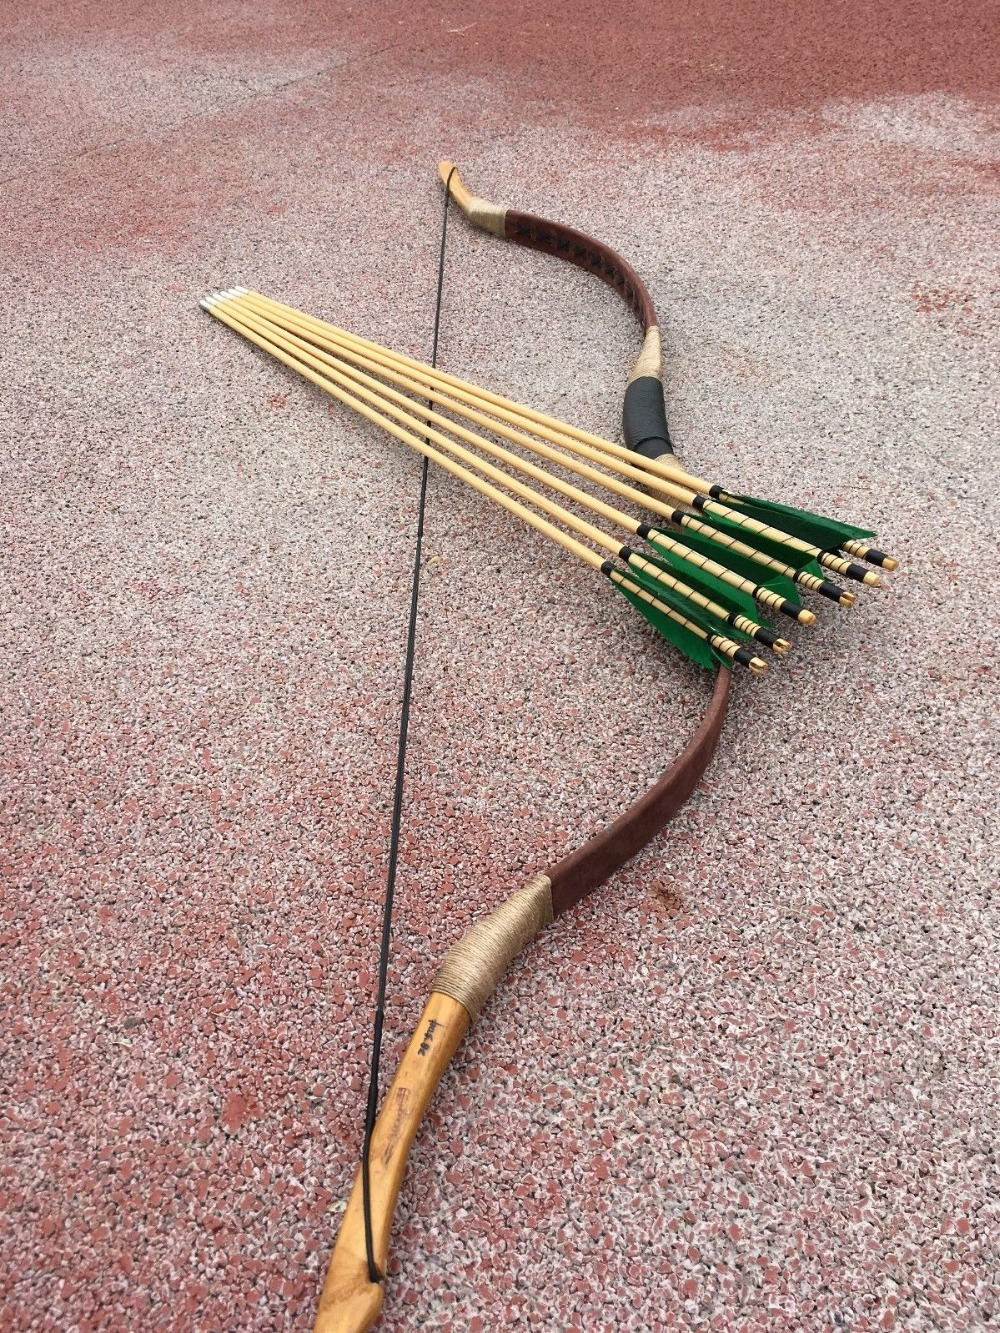 60-90LBS Traditional Chinese longbow handmade Achery longbow for sports hunting +6 Arrows60-90LBS Traditional Chinese longbow handmade Achery longbow for sports hunting +6 Arrows